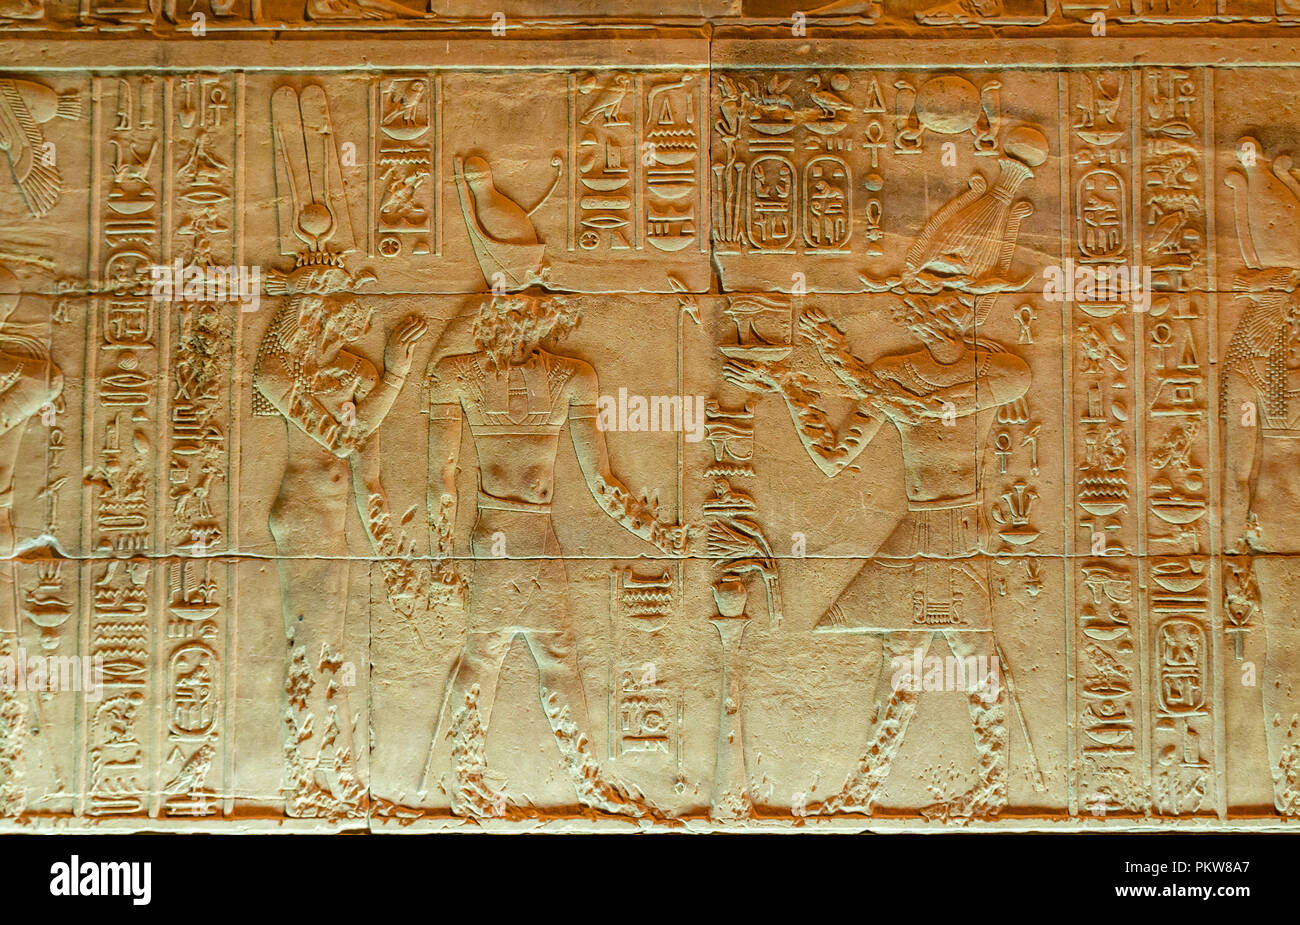 close-up-detail-of-egyptian-figures-and-